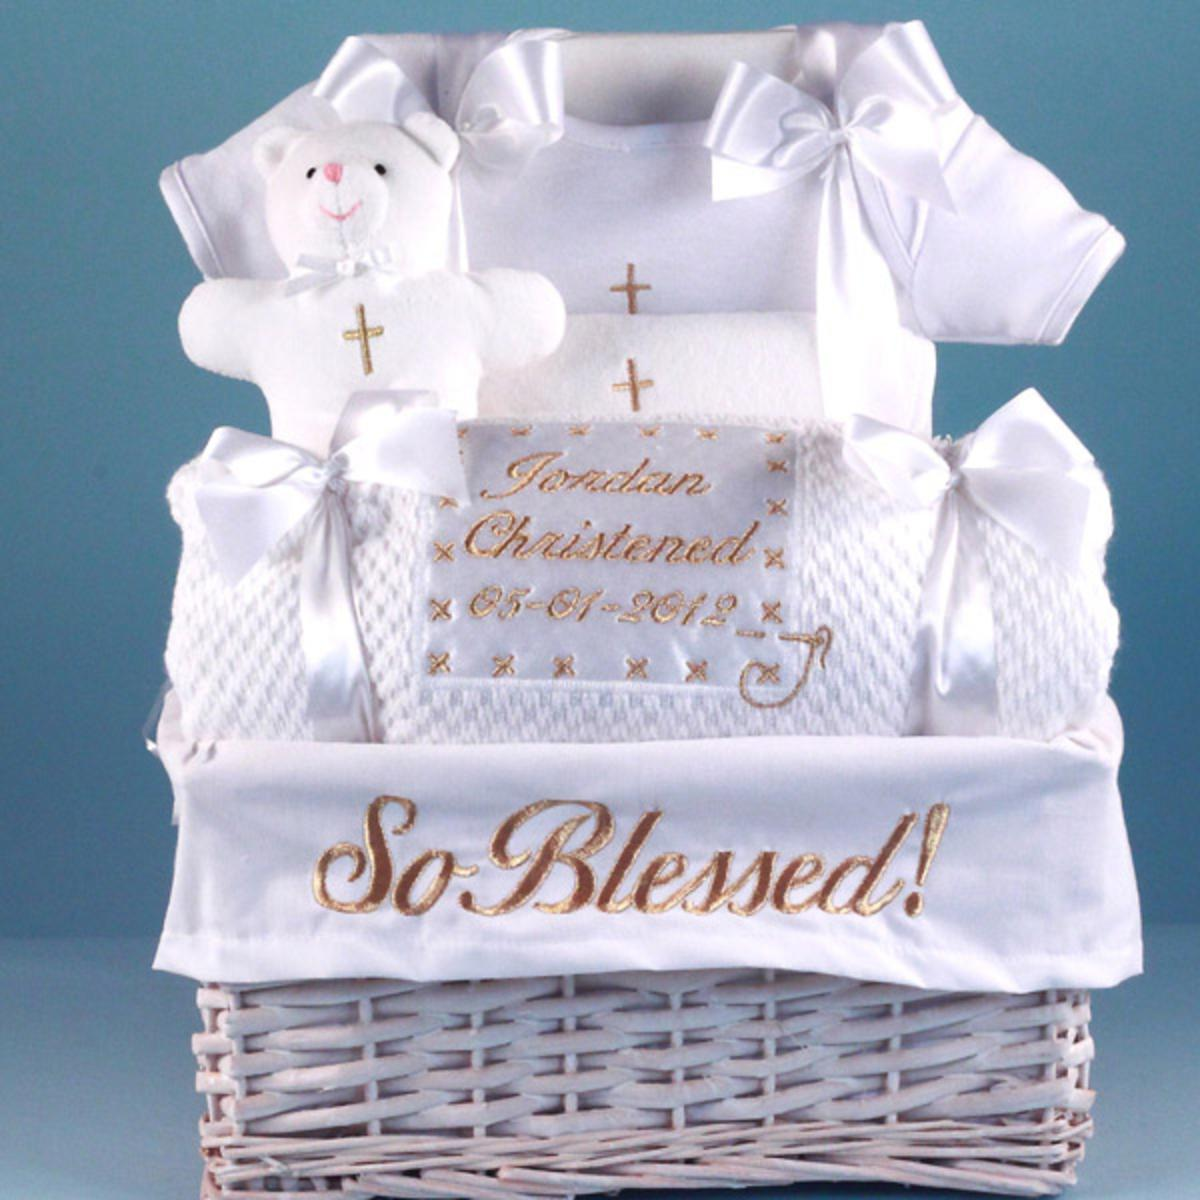 Personalized Baby Gifts Make The Occasion Memorable